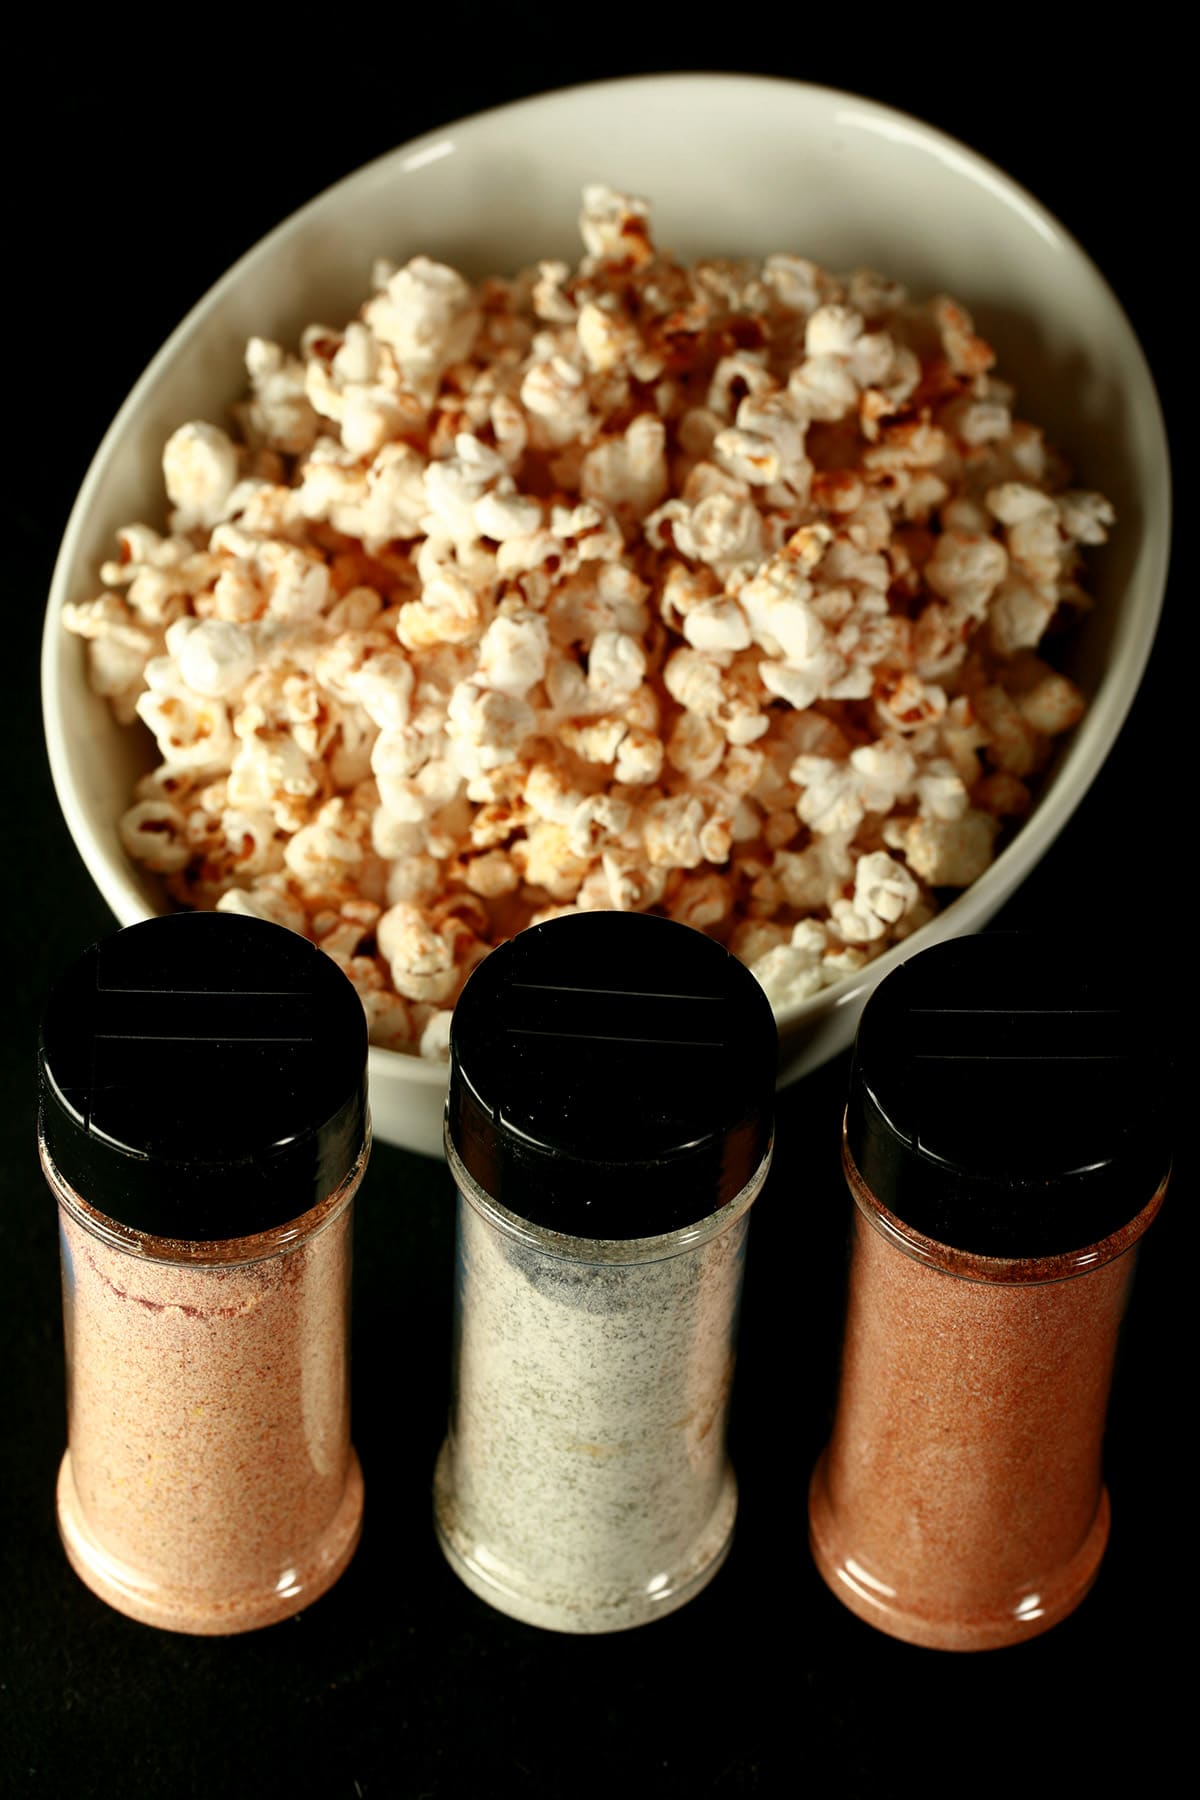 3 small canisters of popcorn seasoning - All Dressed, Dill Pickle, and Ketchup - are lined up in front of a large white bowl of seasoned popcorn.